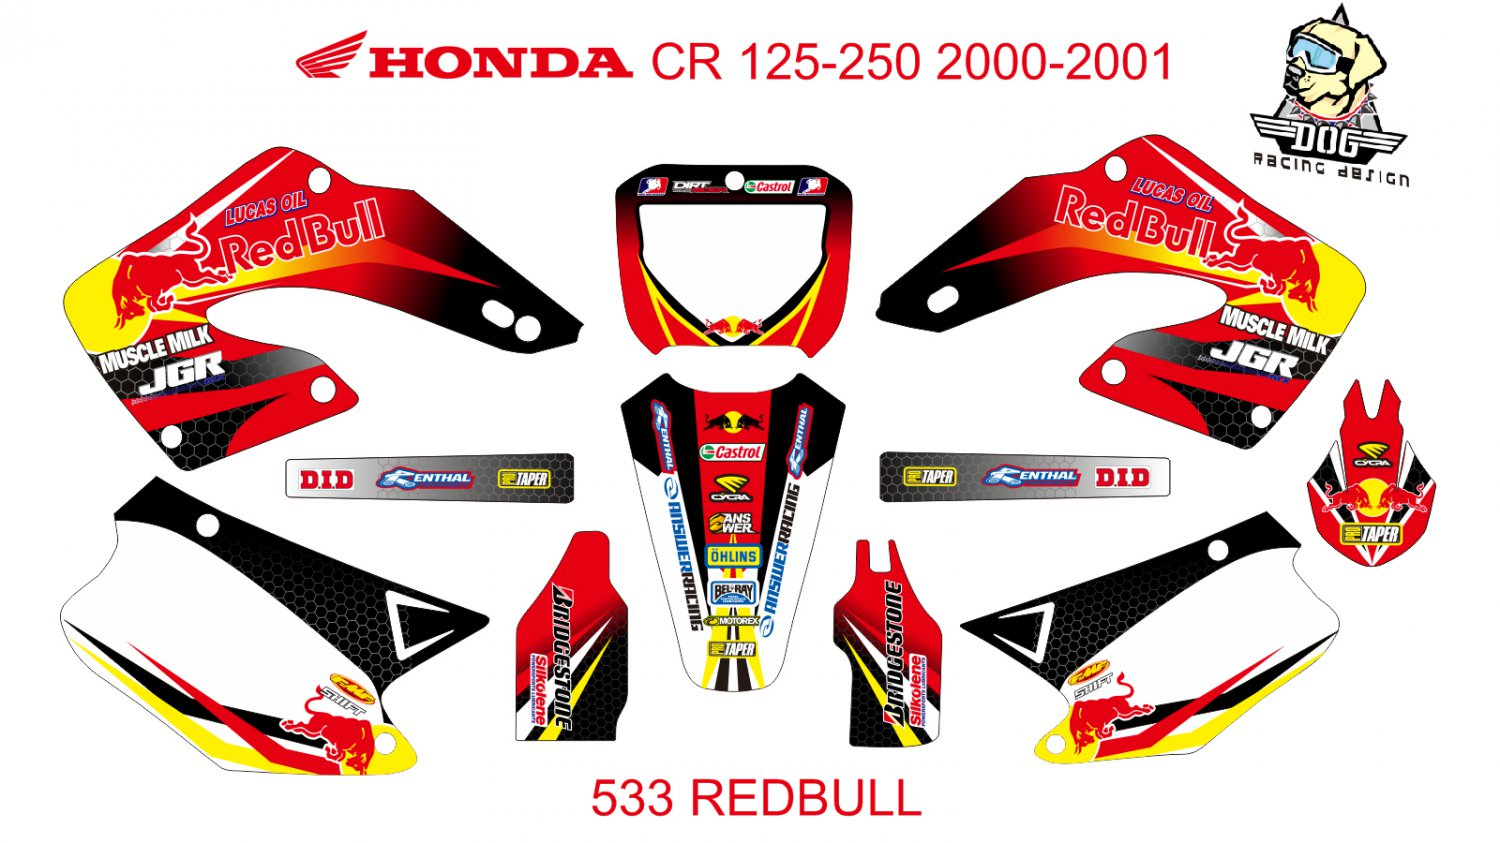 HONDA CR 125-250 2000-2001 GRAPHIC DECAL KIT CODE.533